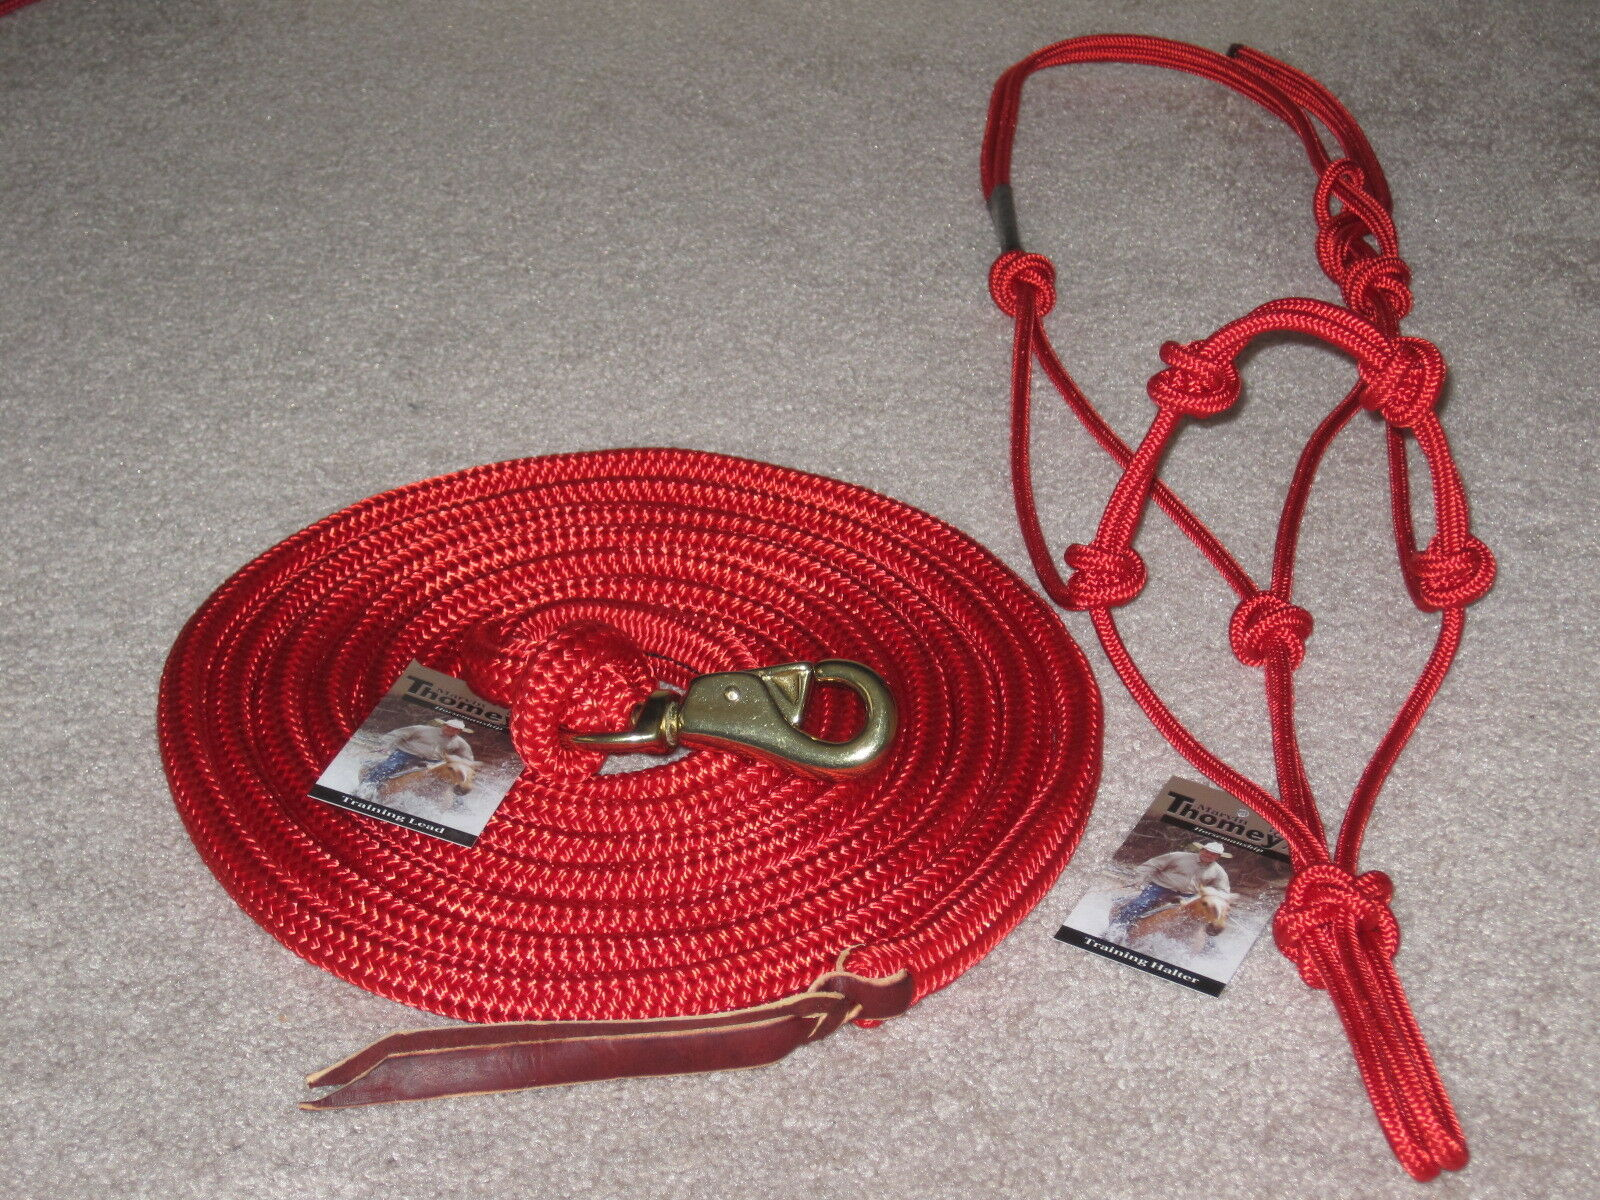 THOMEY NATURAL HORSE TRAINING HALTER & 14FT. LEAD ROPEGREAT FOR GROUNDWORK RED